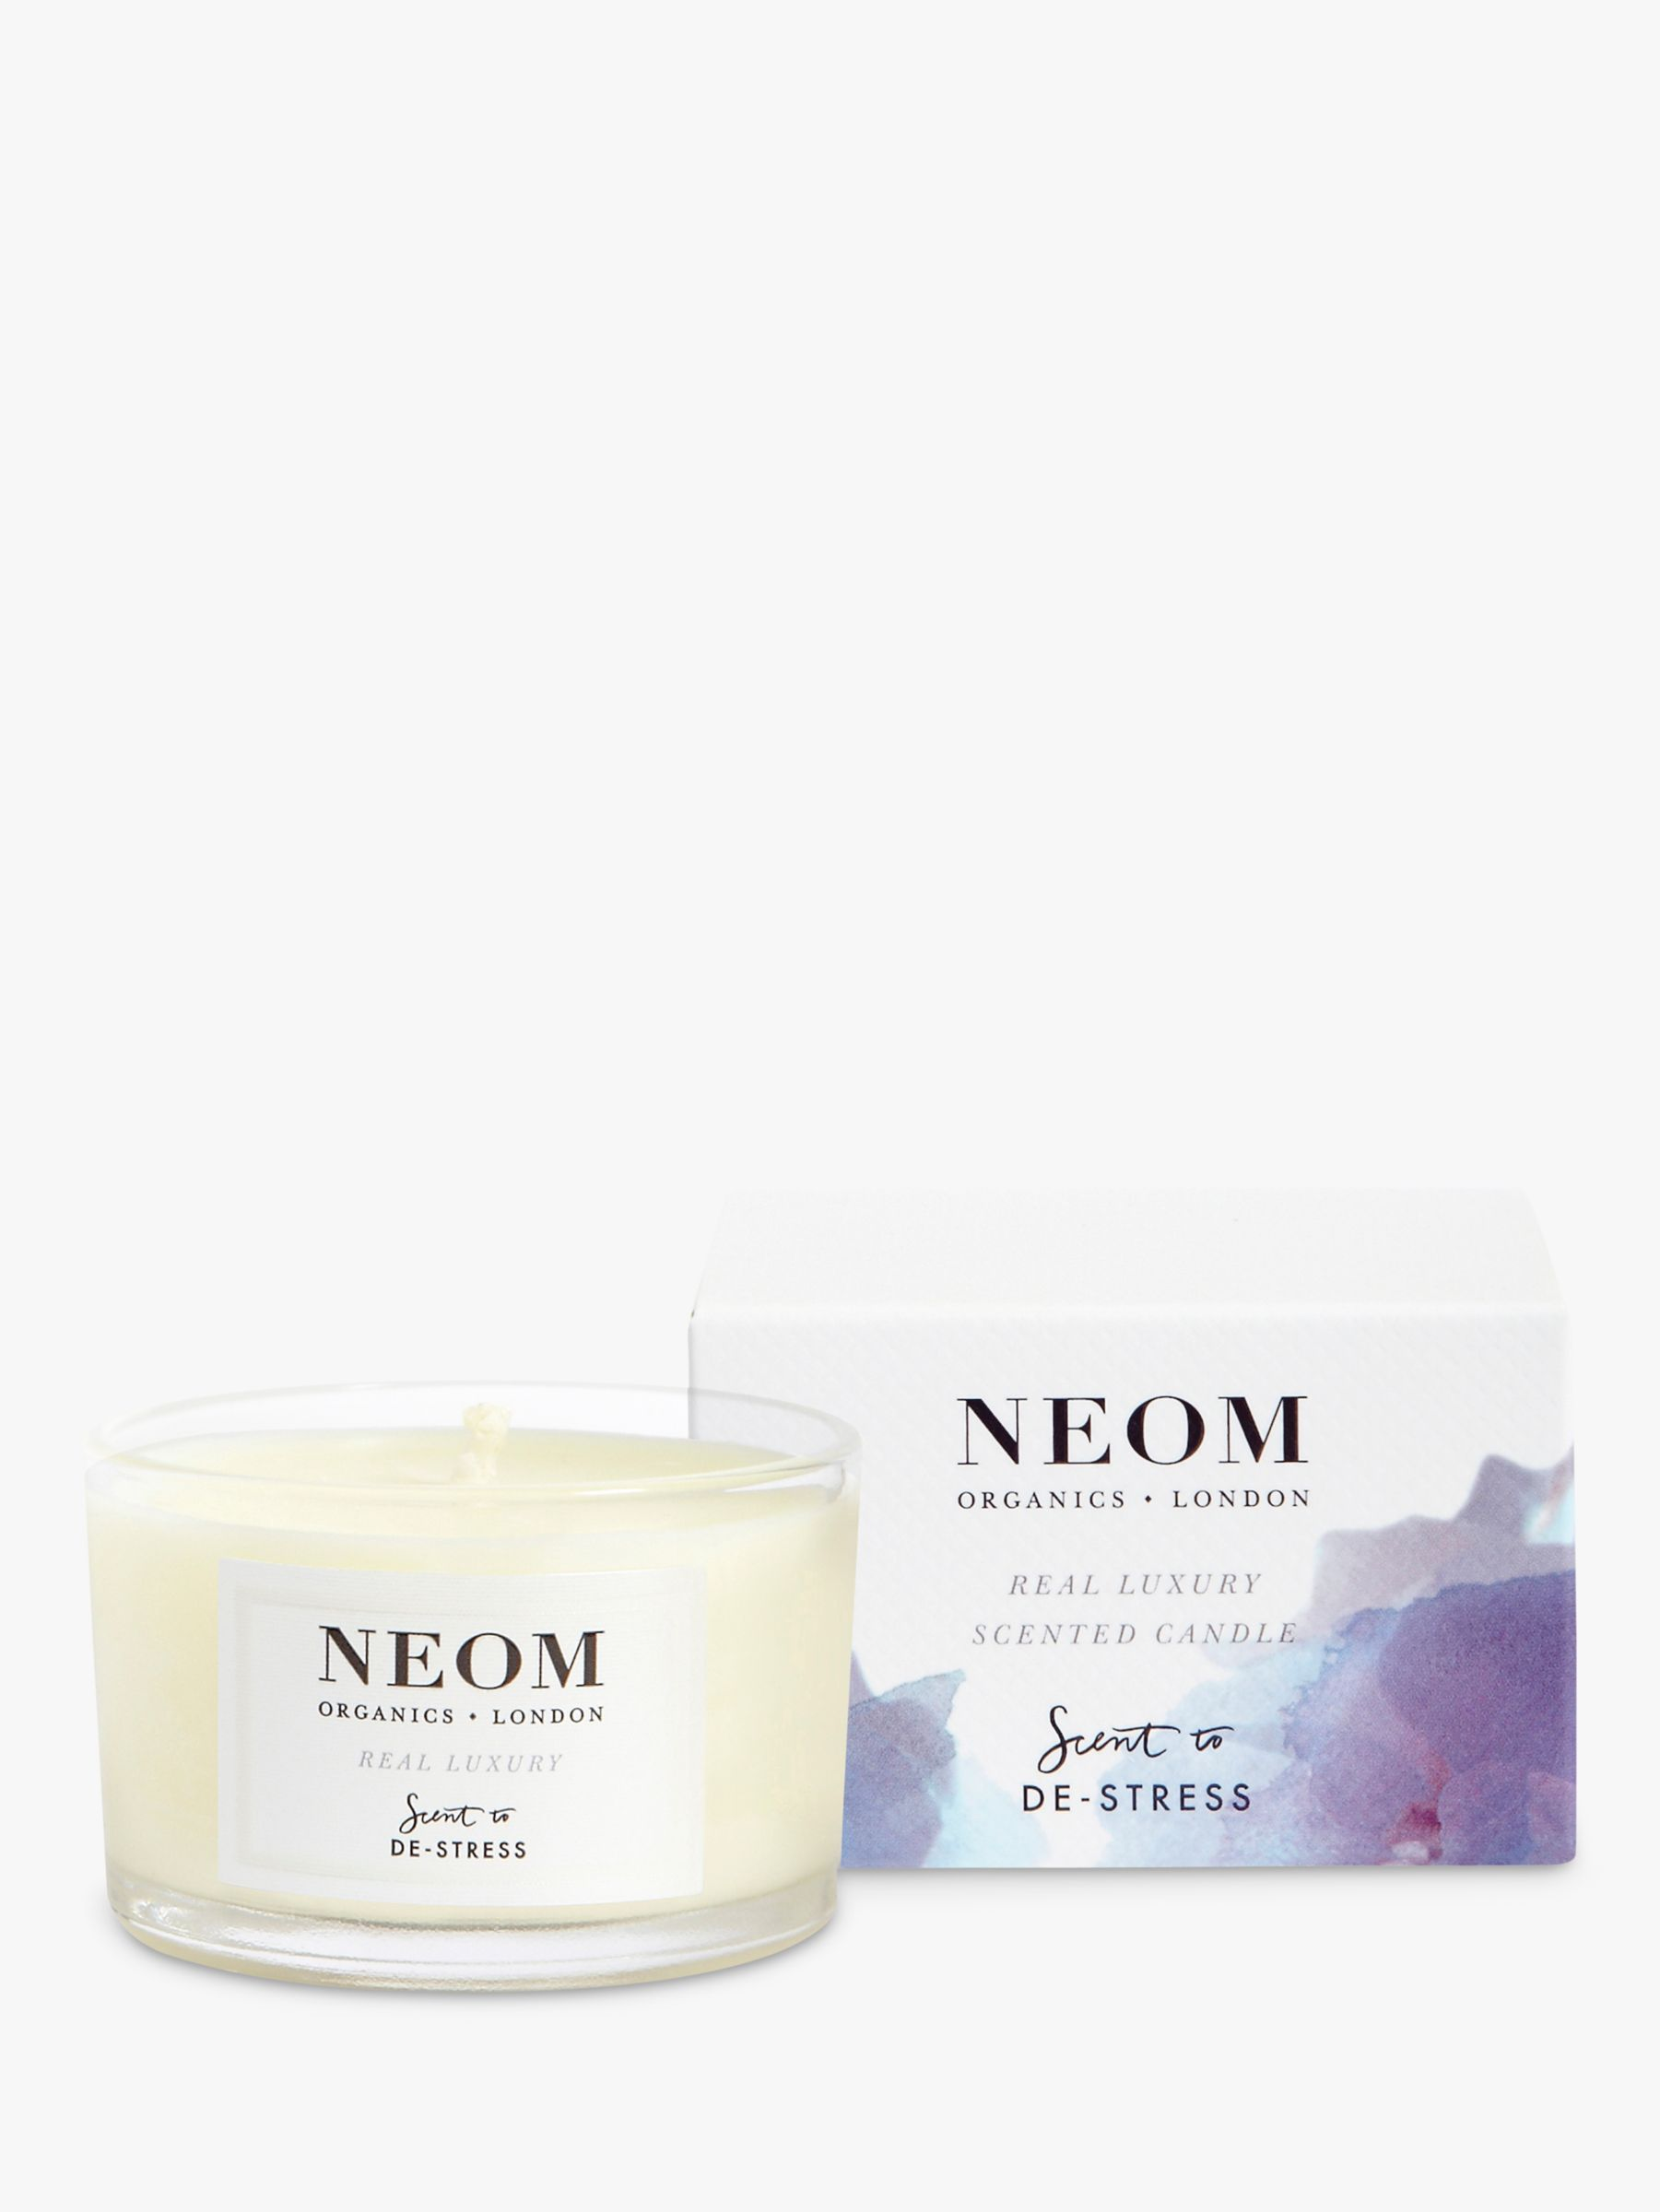 Neom Neom Real Luxury Travel Candle, 75g